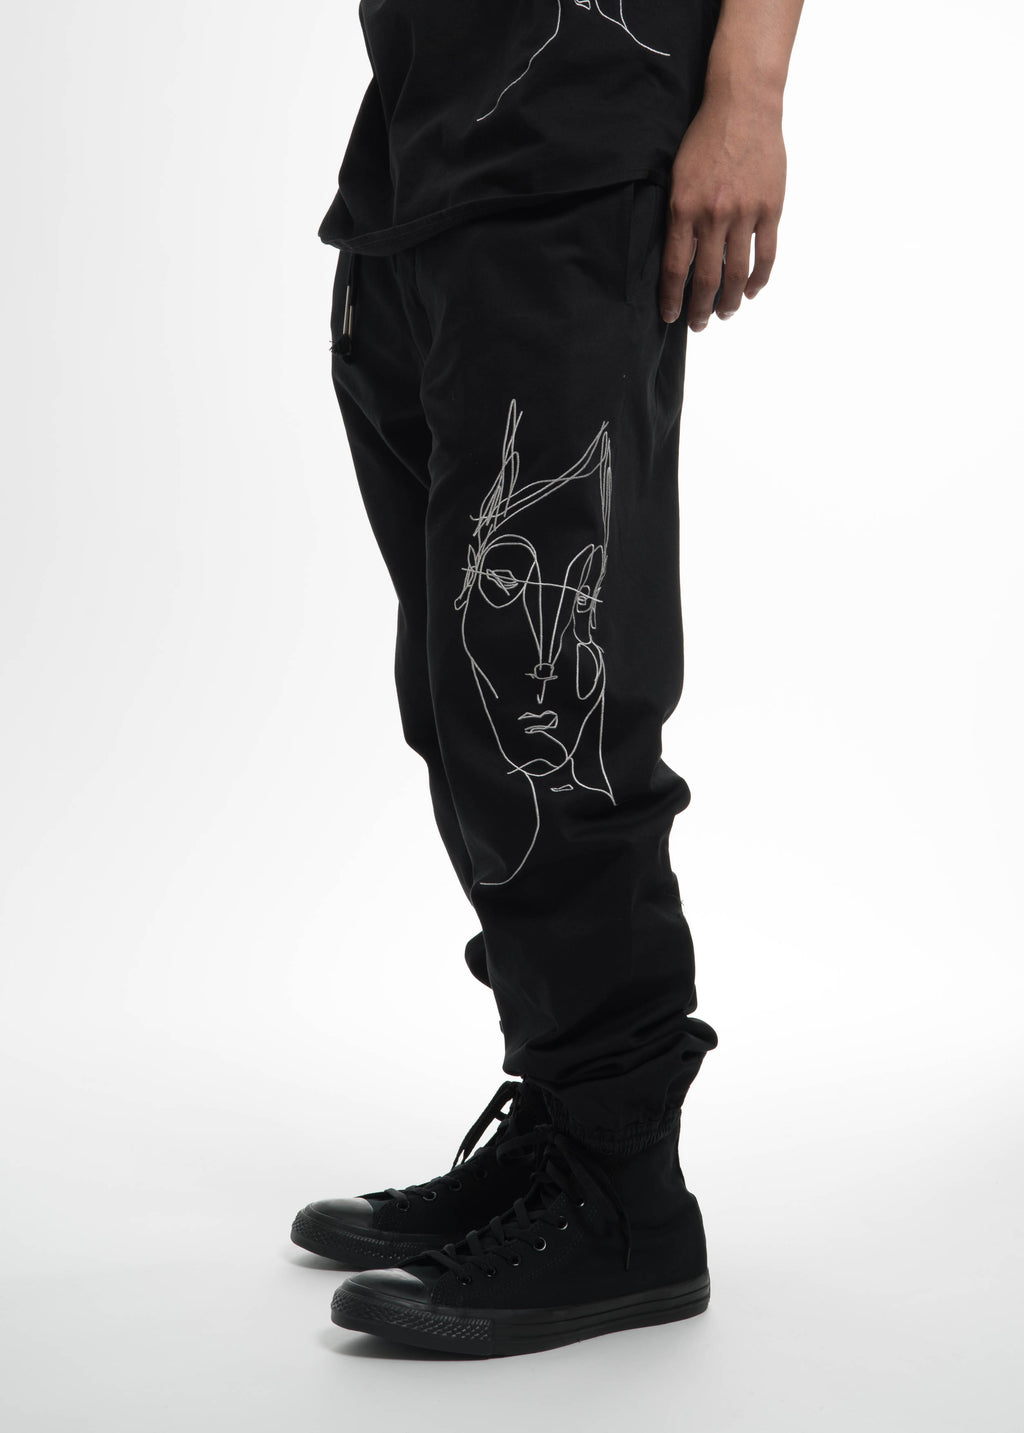 Siki Im, Black Drawstring Pants w/ Face, 017 Shop